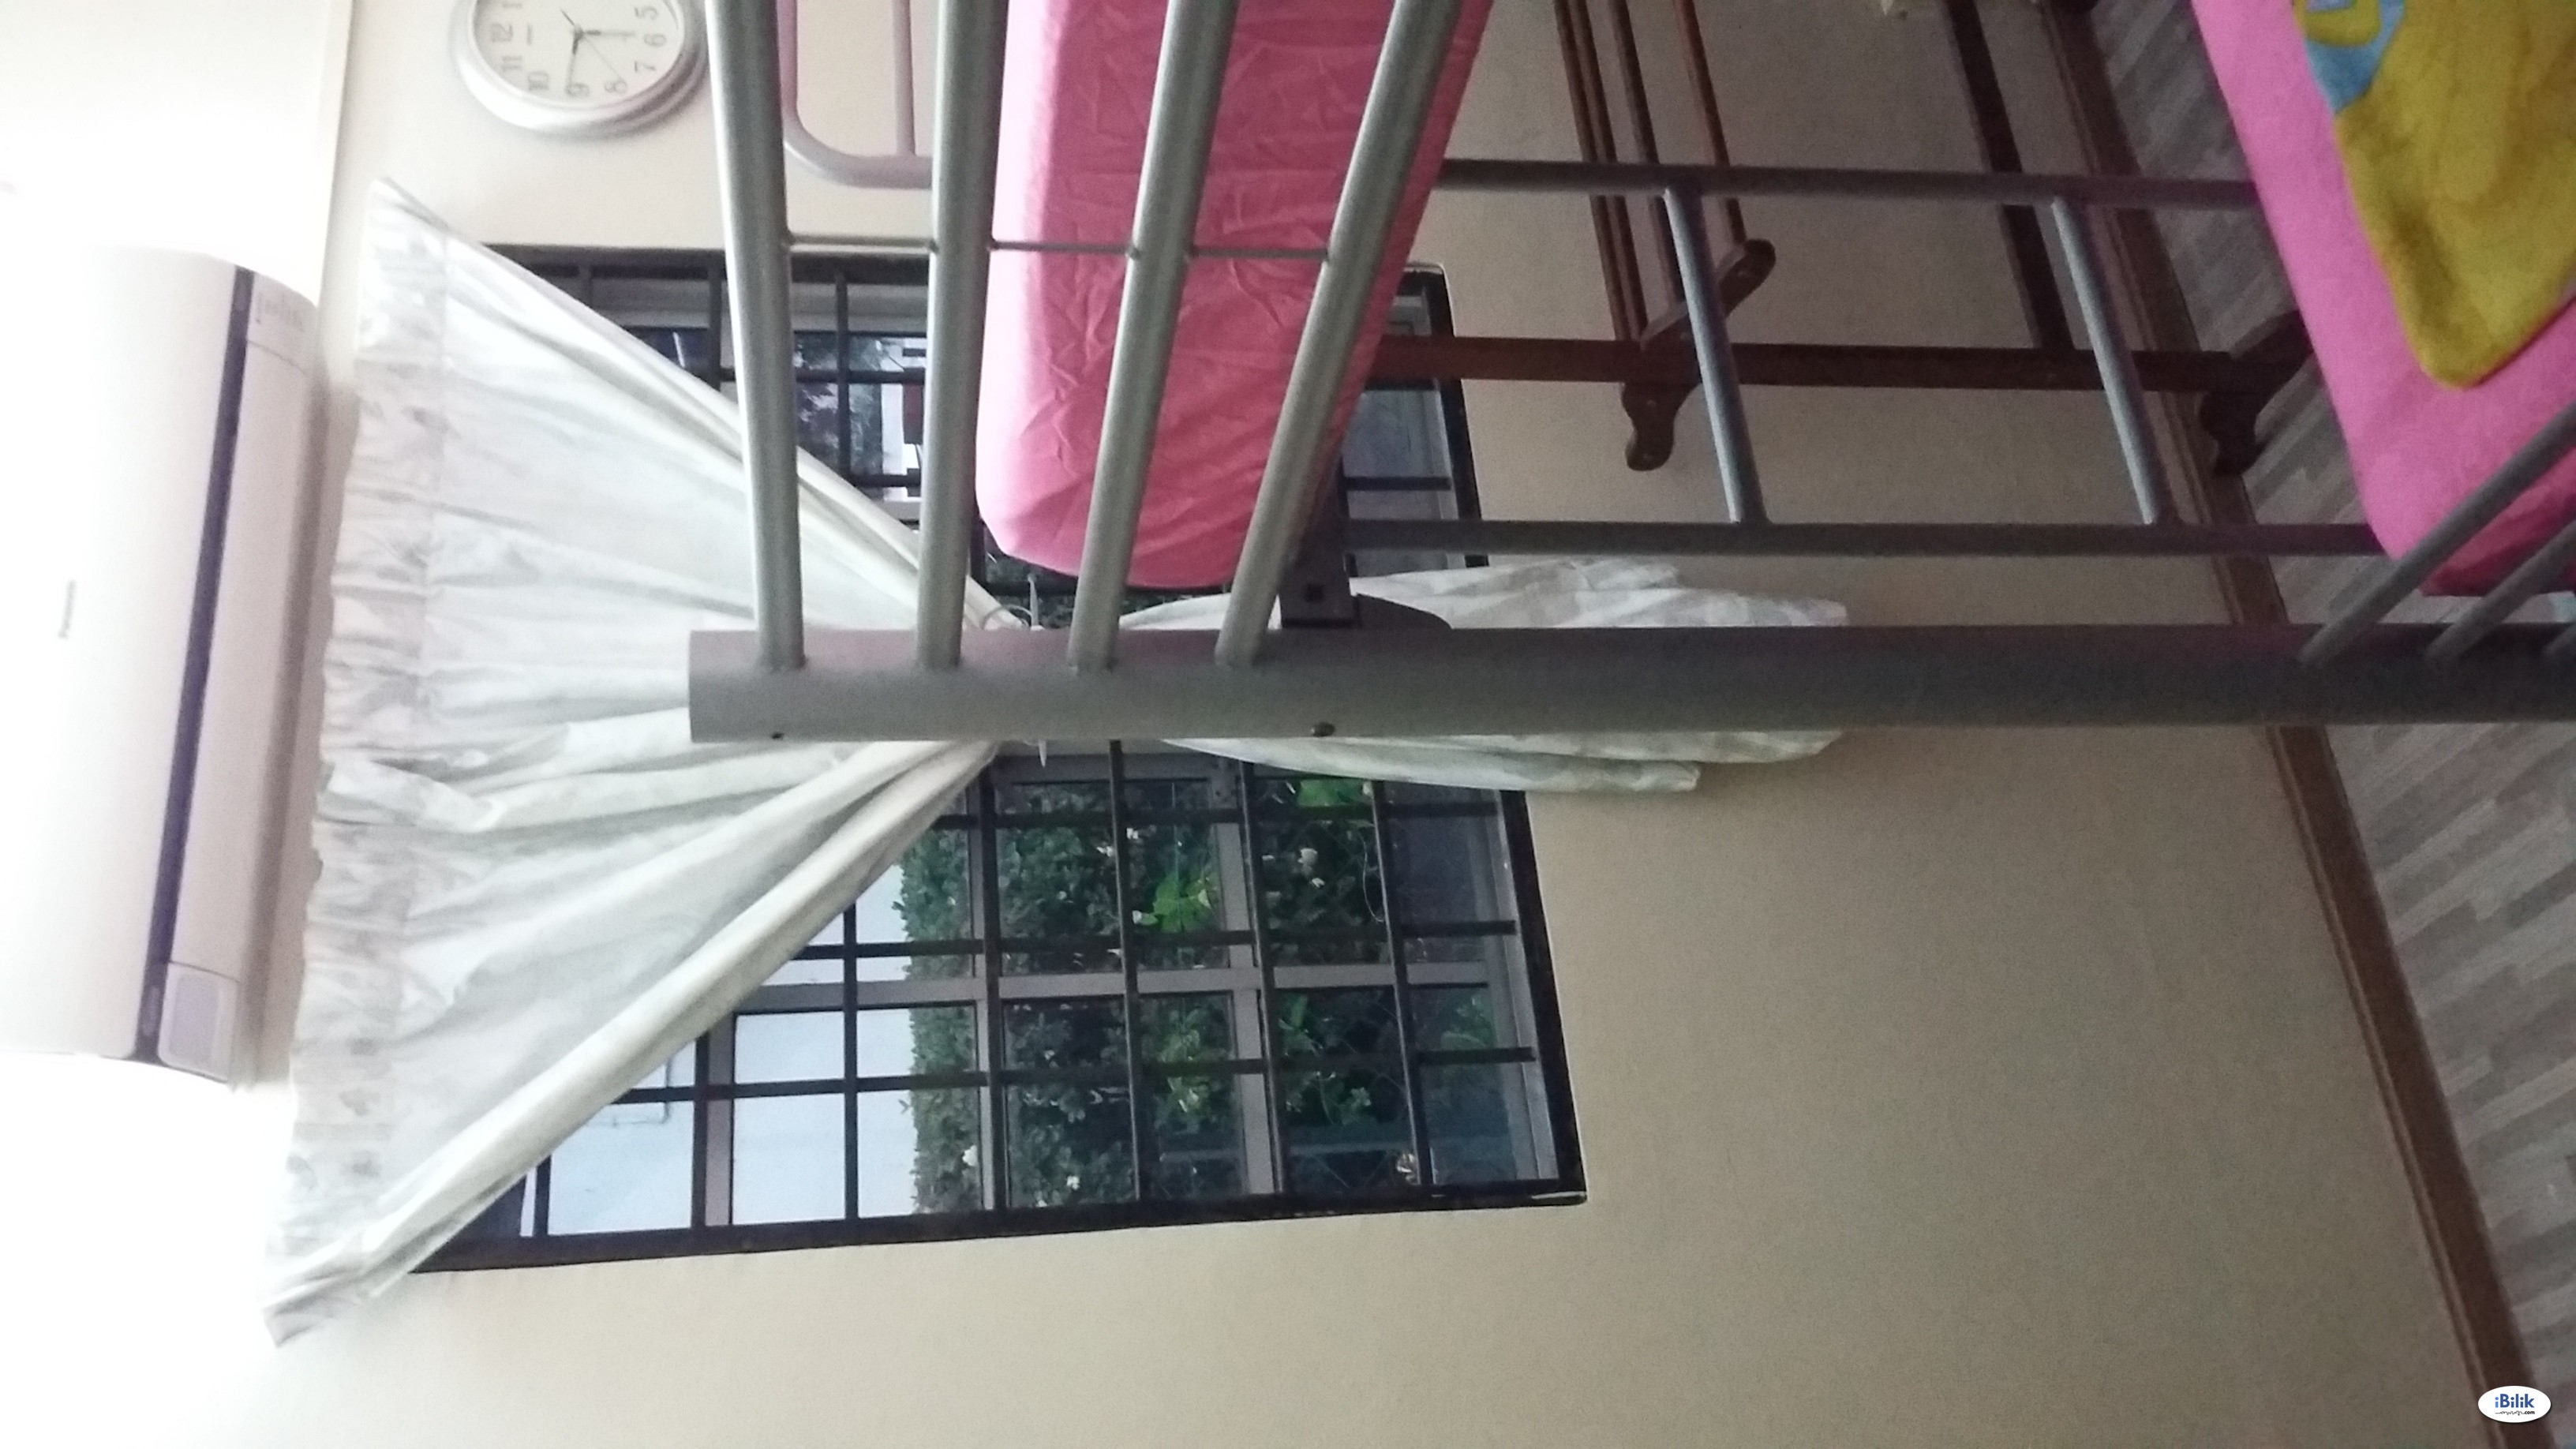 A/C Room for 2ppl (FEMALES ONLY) Jln 14/34, Daily RM35